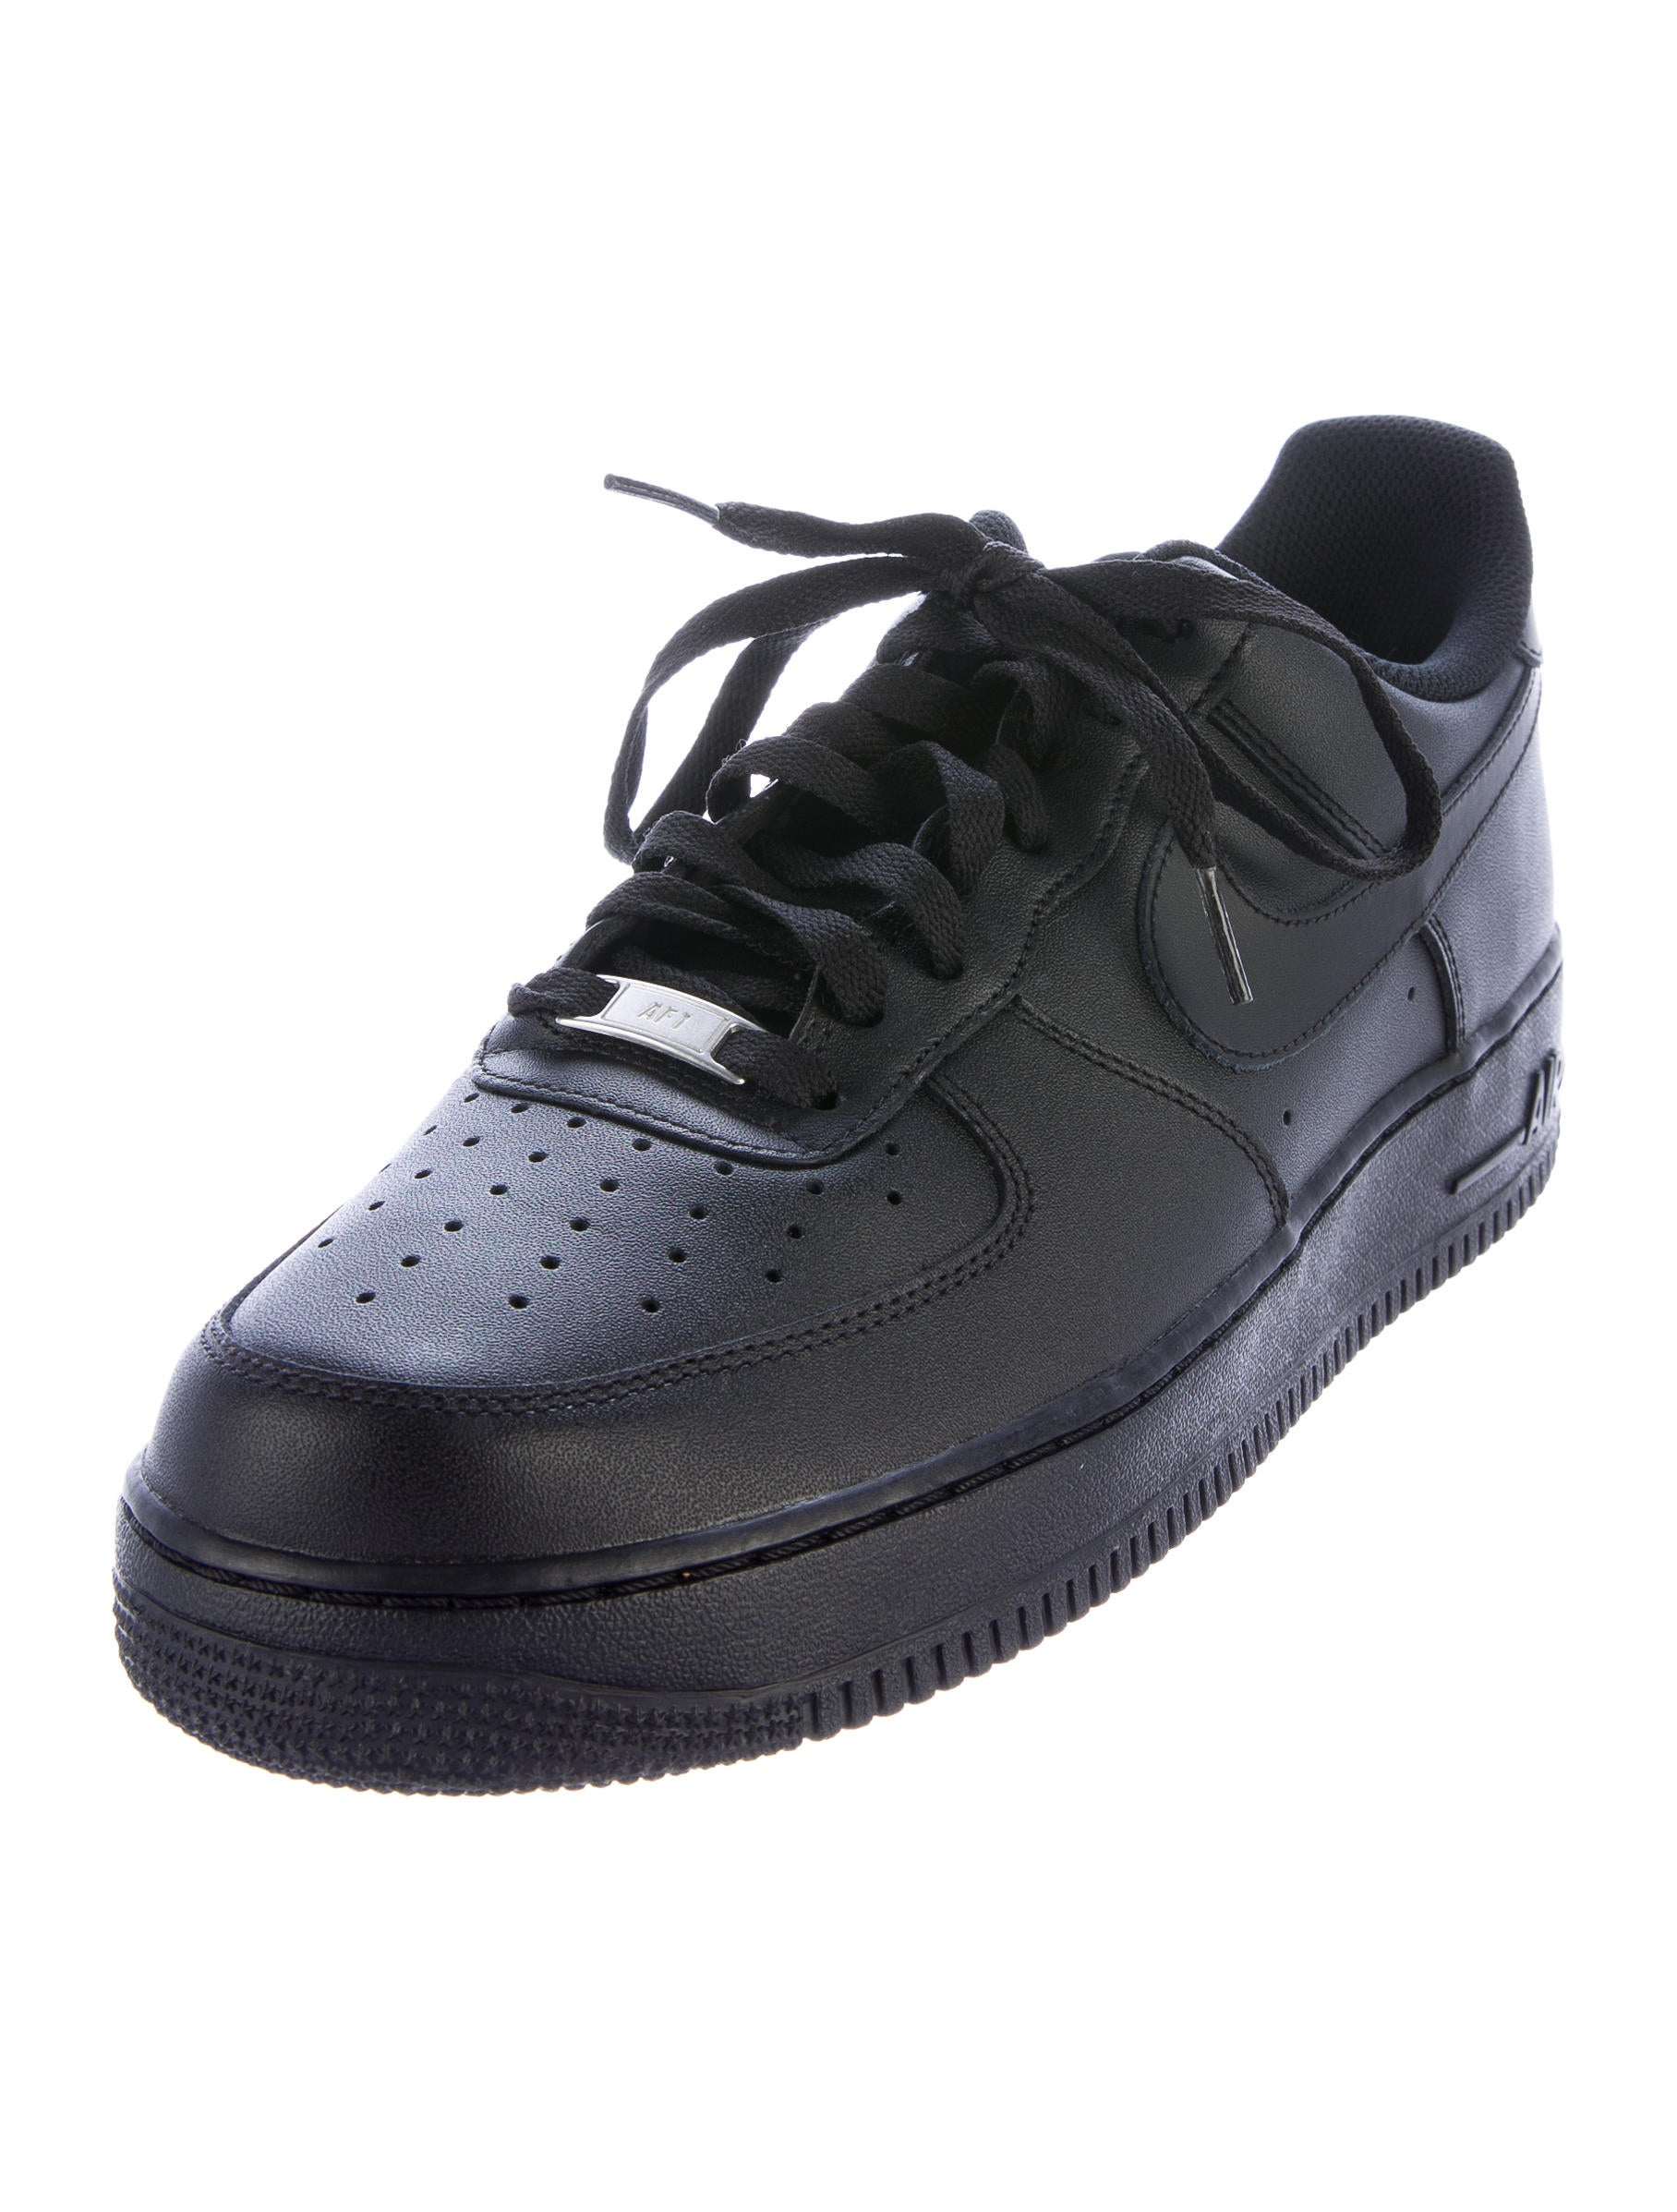 Low Dining Room Tables Nike Air Force 1 Sneakers Shoes Wu221342 The Realreal